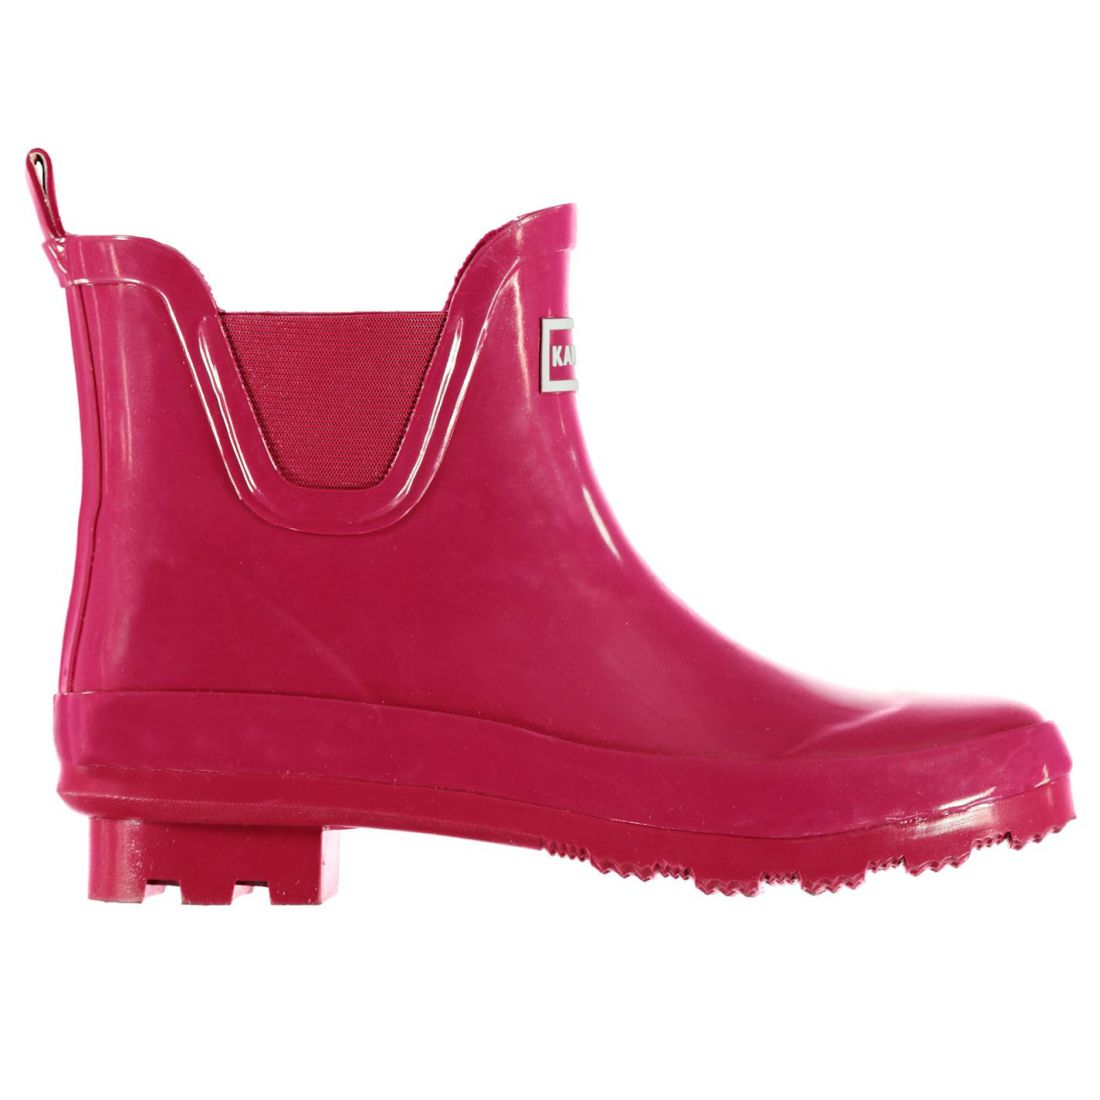 05e70d01666 KANGOL SHORT WELLIES Ladies Wellingtons Pull On Comfortable Fit